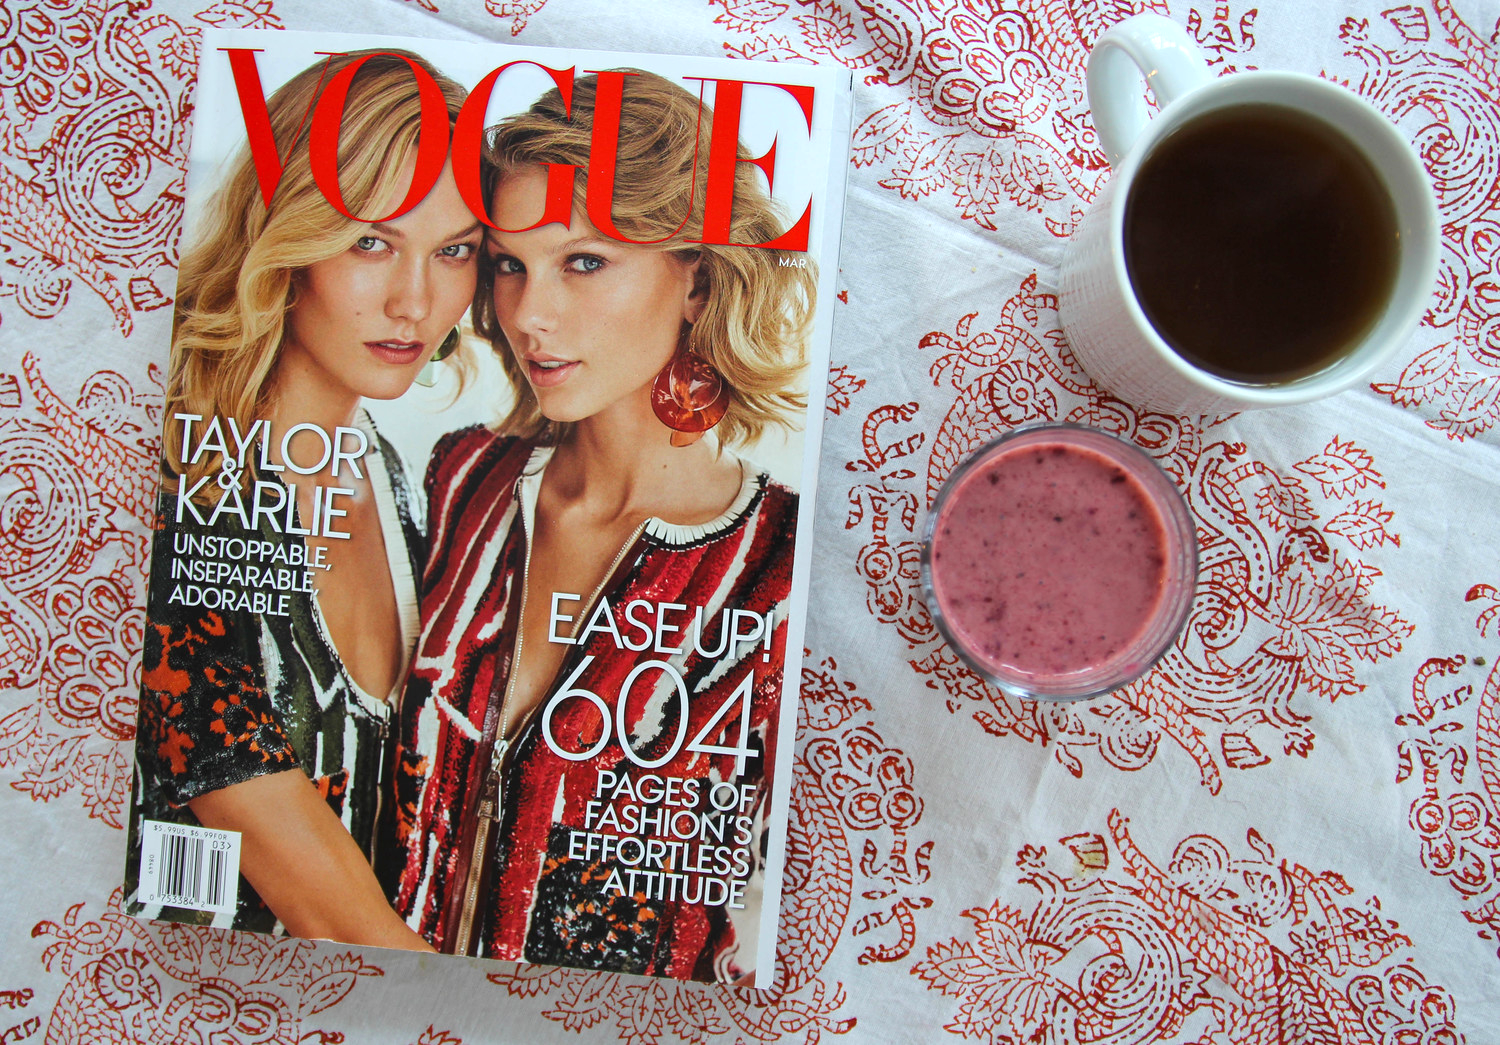 {Hydrating with green tea and a fruit smoothie while flipping through my new Vogue!}